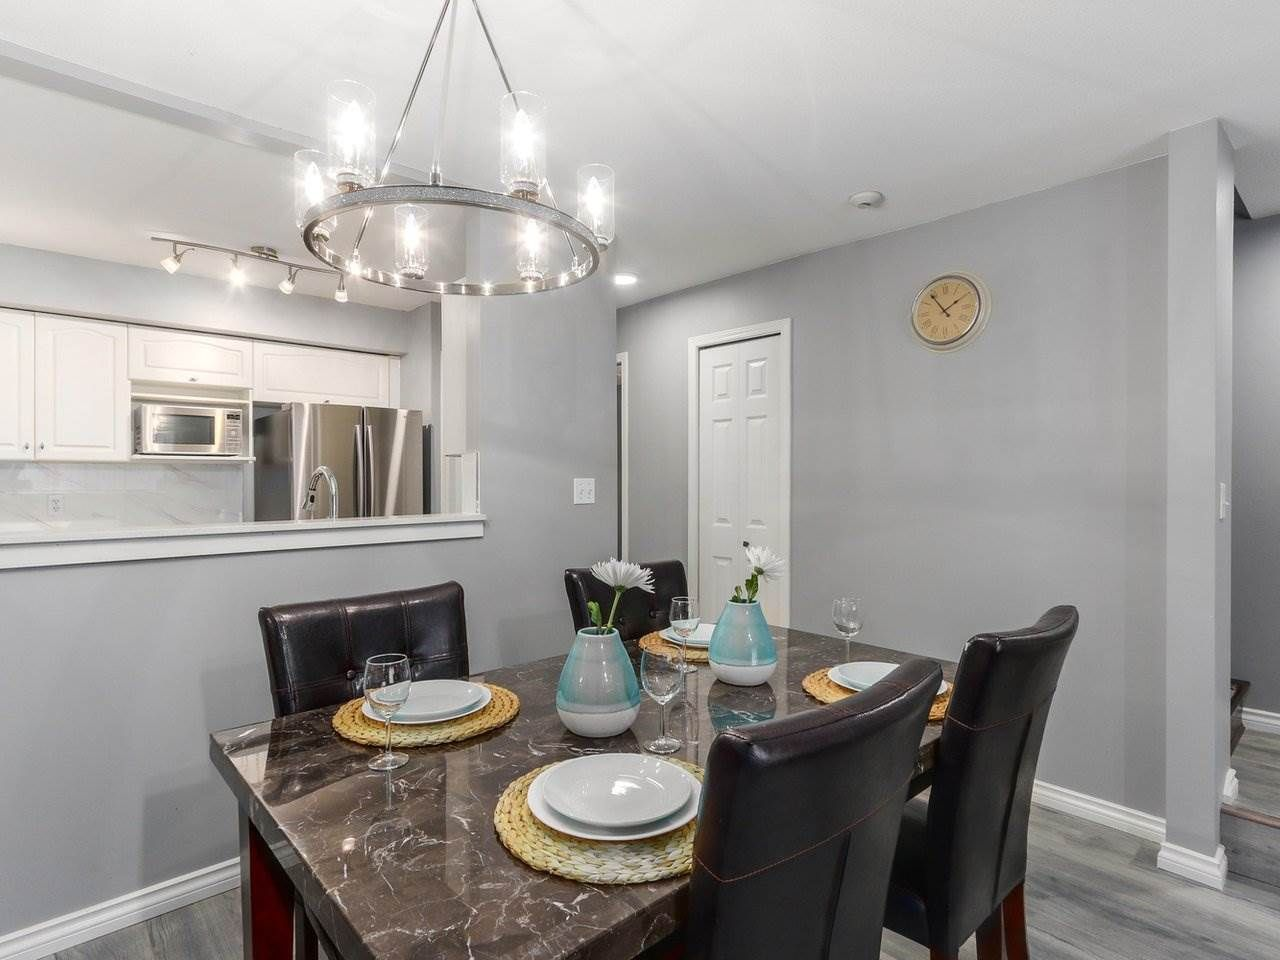 Main Photo: 5 2378 RINDALL AVENUE in Port Coquitlam: Central Pt Coquitlam Condo for sale : MLS®# R2263308